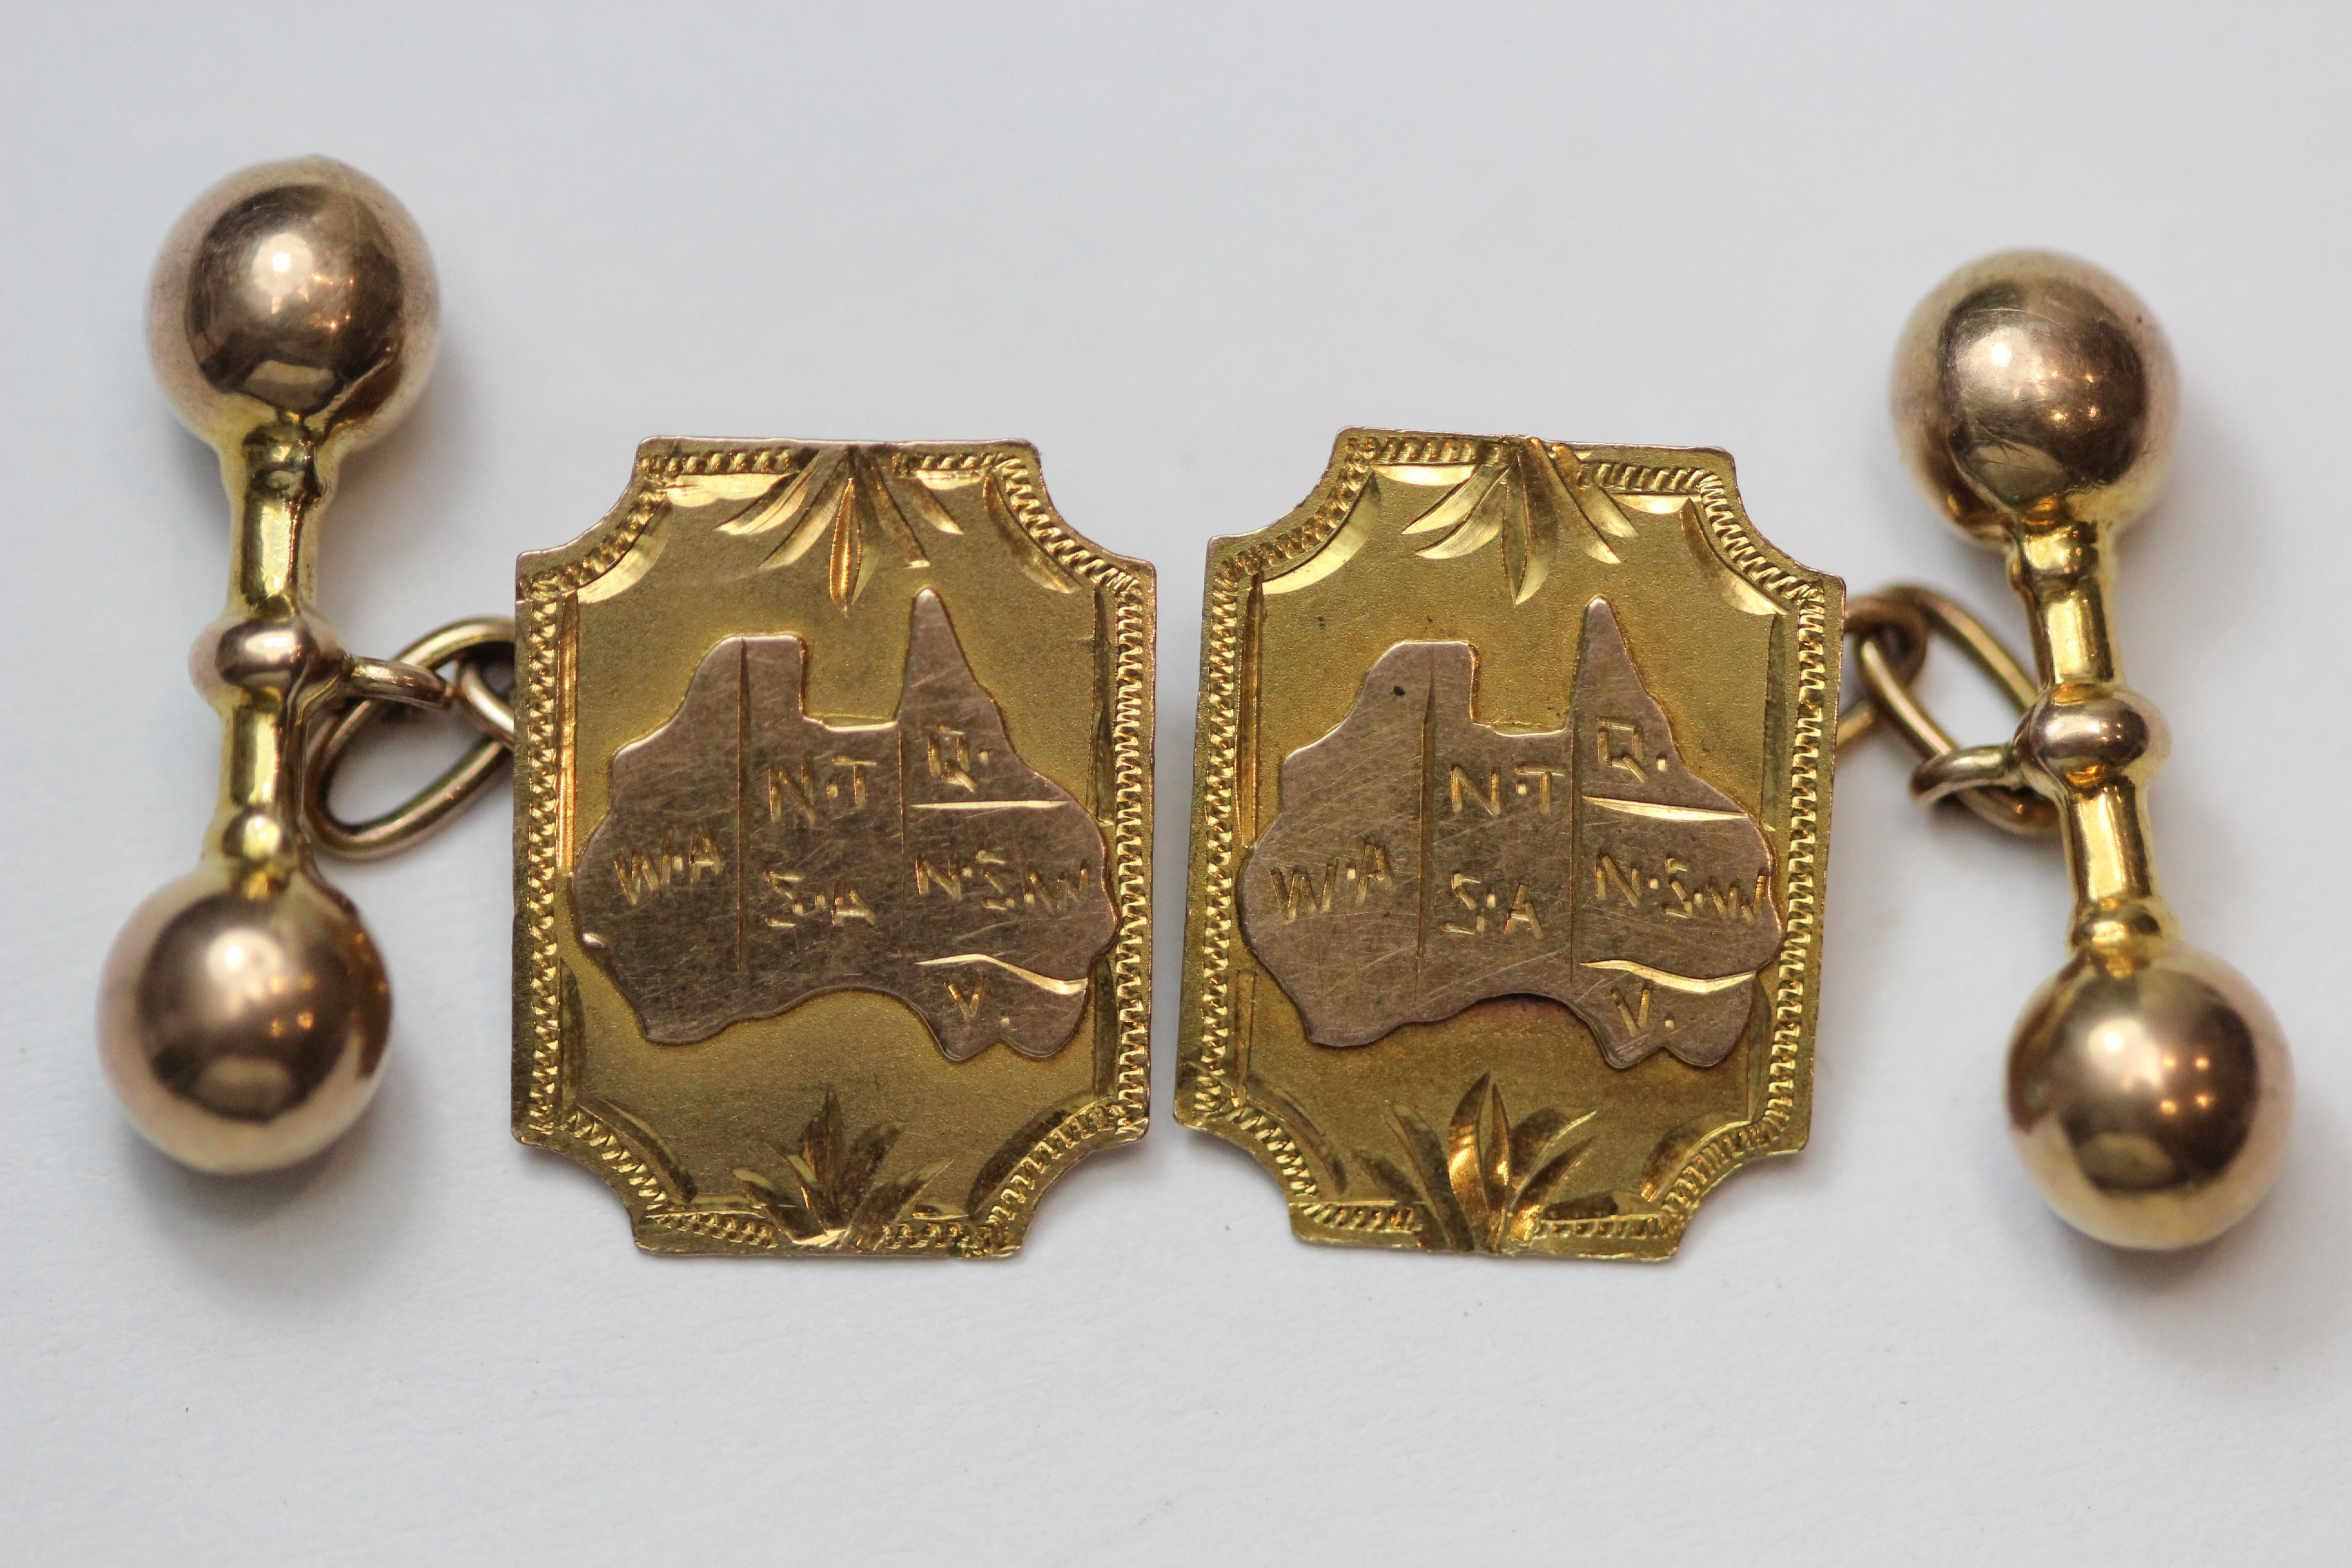 Vintage Cufflinks in 9ct Gold featuring a Map of Australia